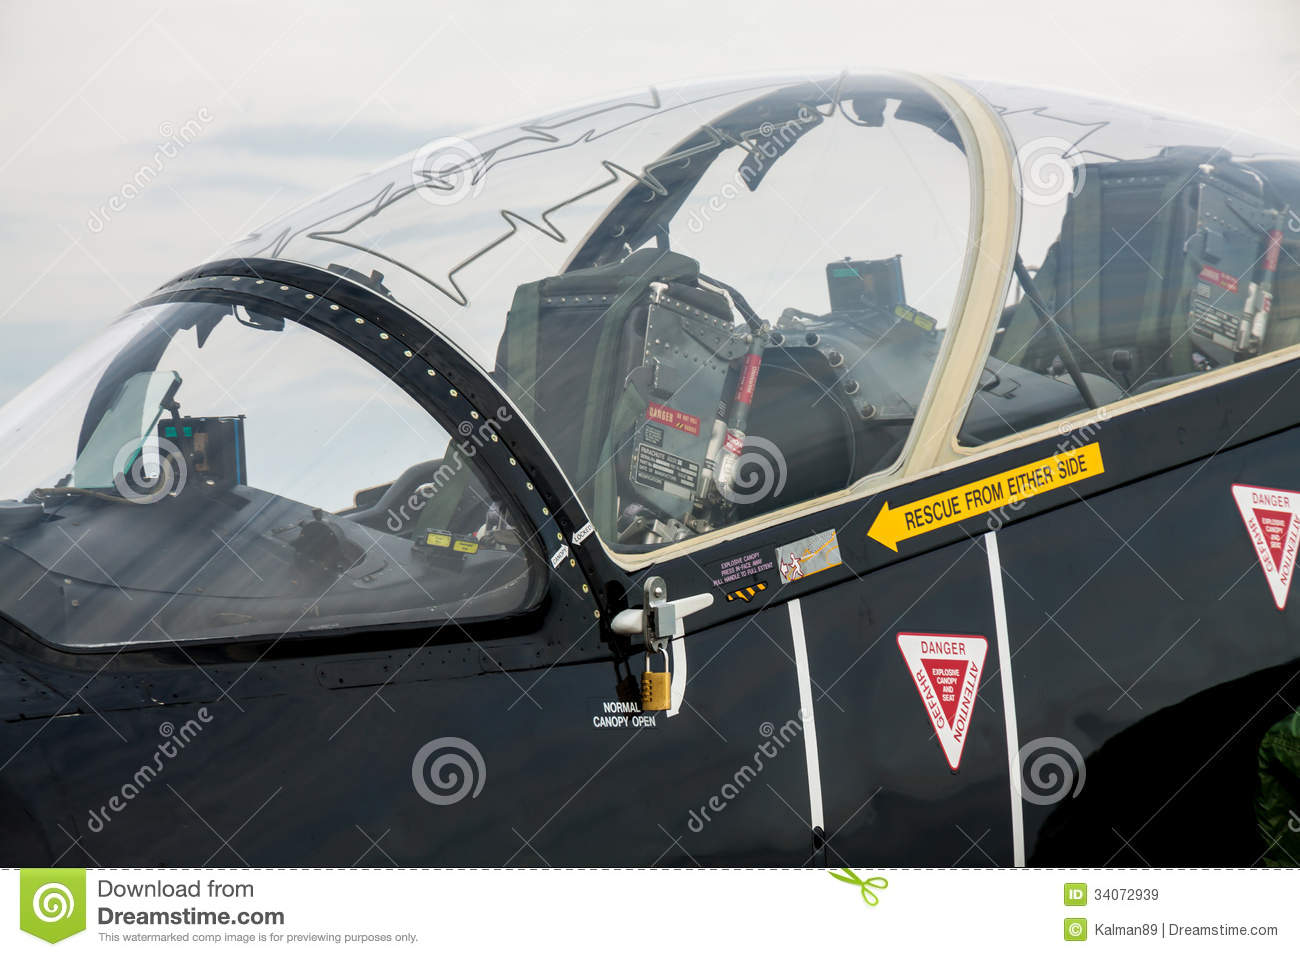 Jet Fighter Canopy Closed & Jet Fighter Canopy Closed stock image. Image of seat - 34072939